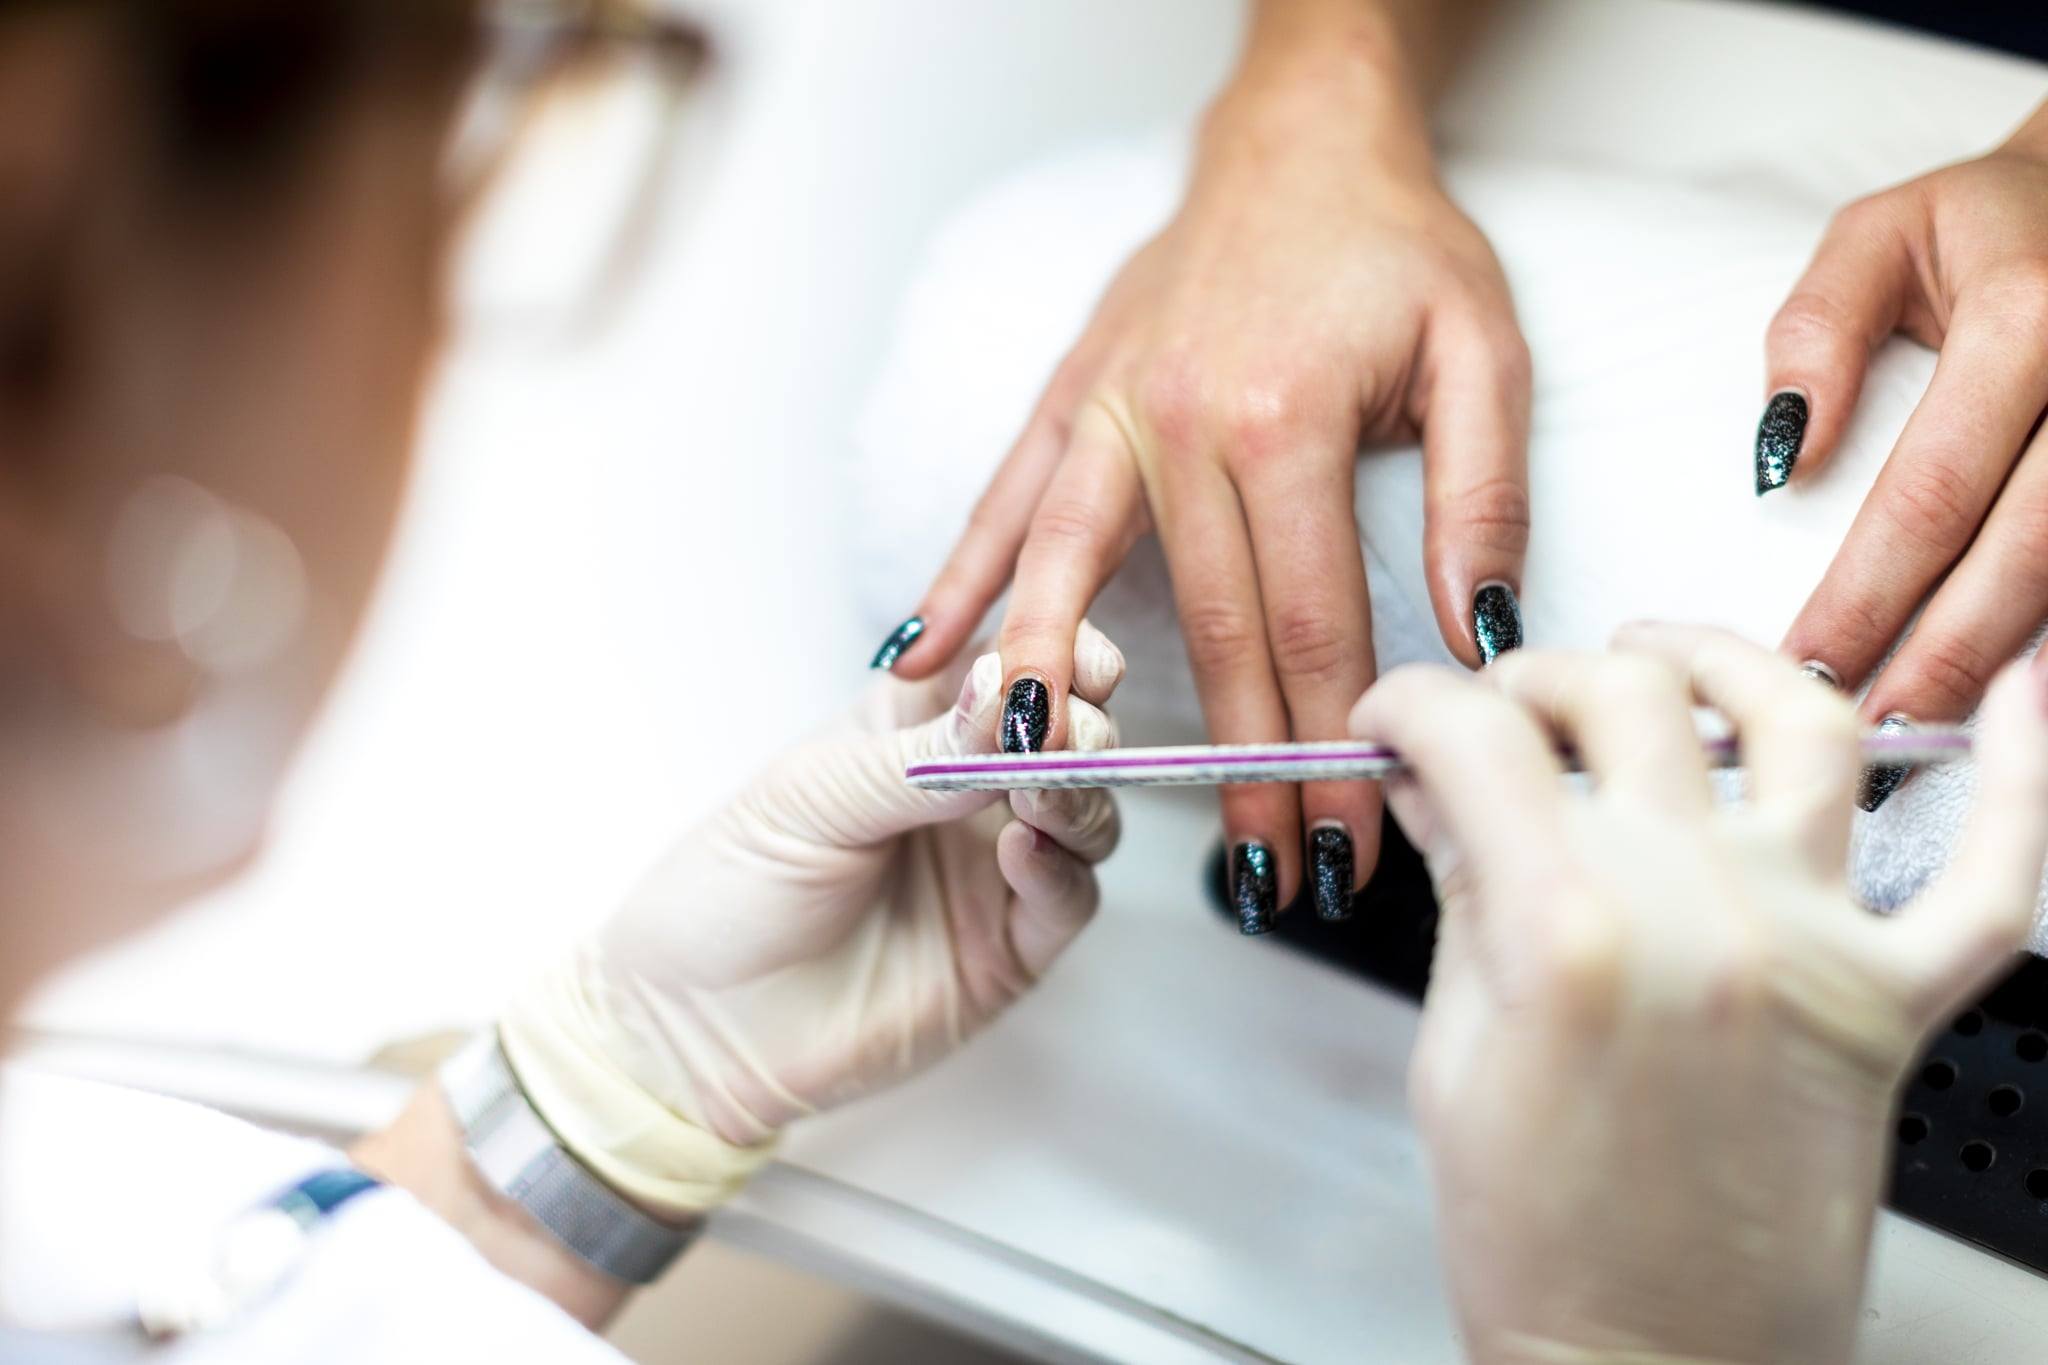 A nail file being used to tidy up a nail and remove cuticles during a manicure procedure.